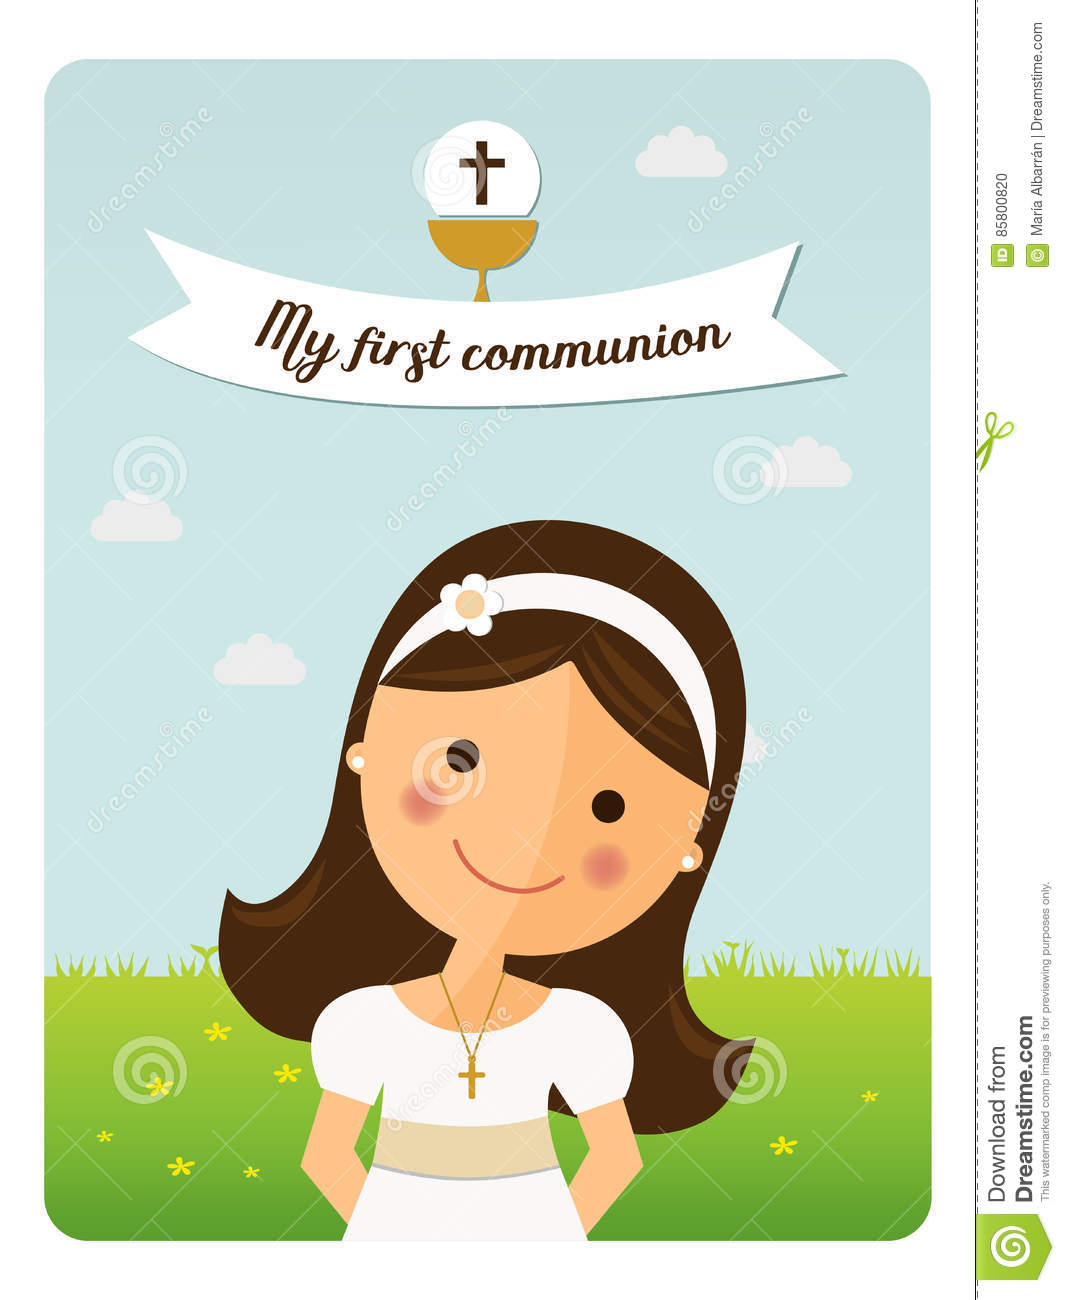 My first communion reminder with foreground girl